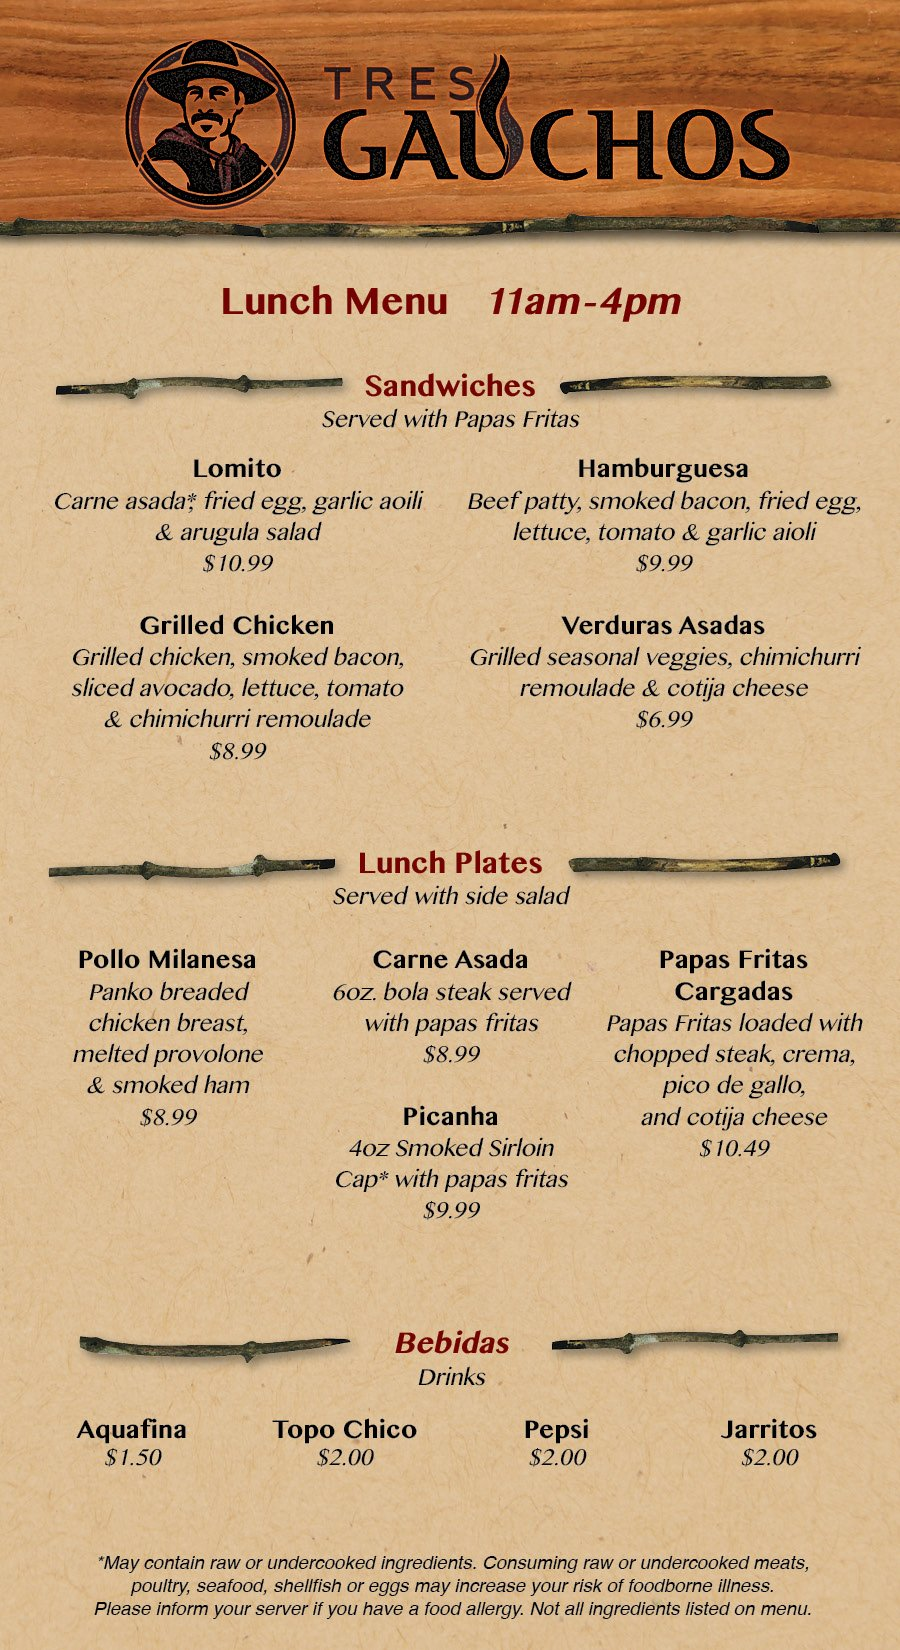 Tres Gauchos Lunch Menu